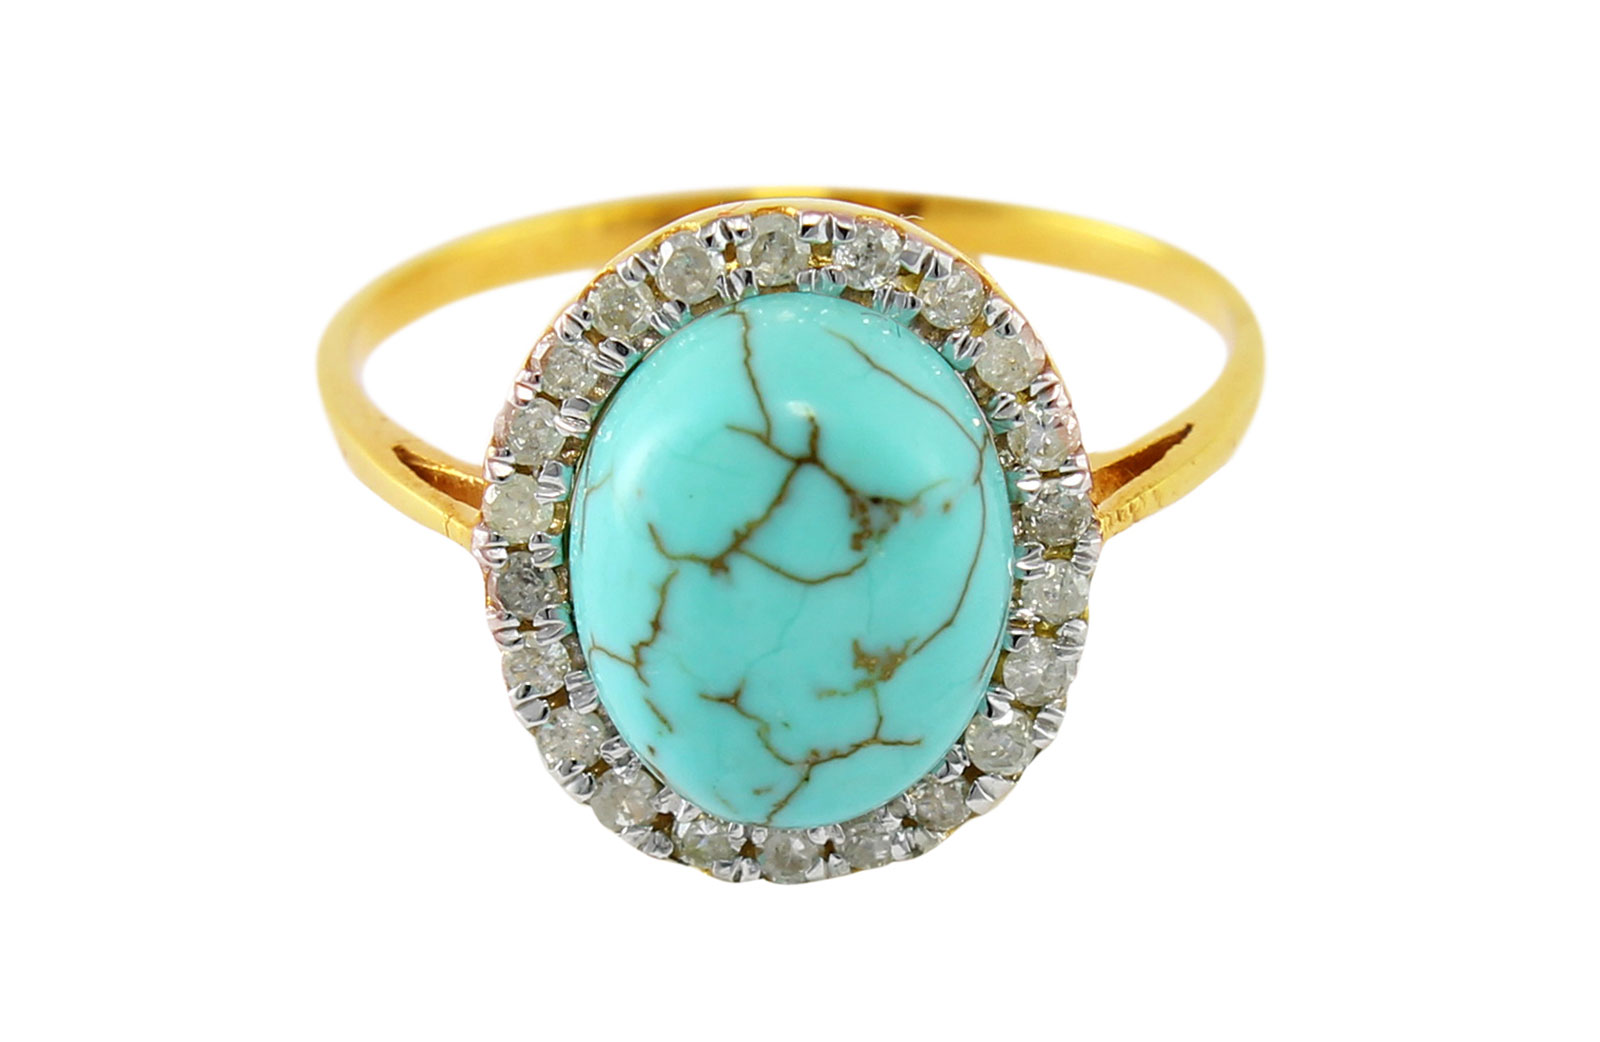 Vp Jewels 10K Solid Gold 0.22ct Genuine Diamond 9mm Turquoise Ring - Size US 6.5